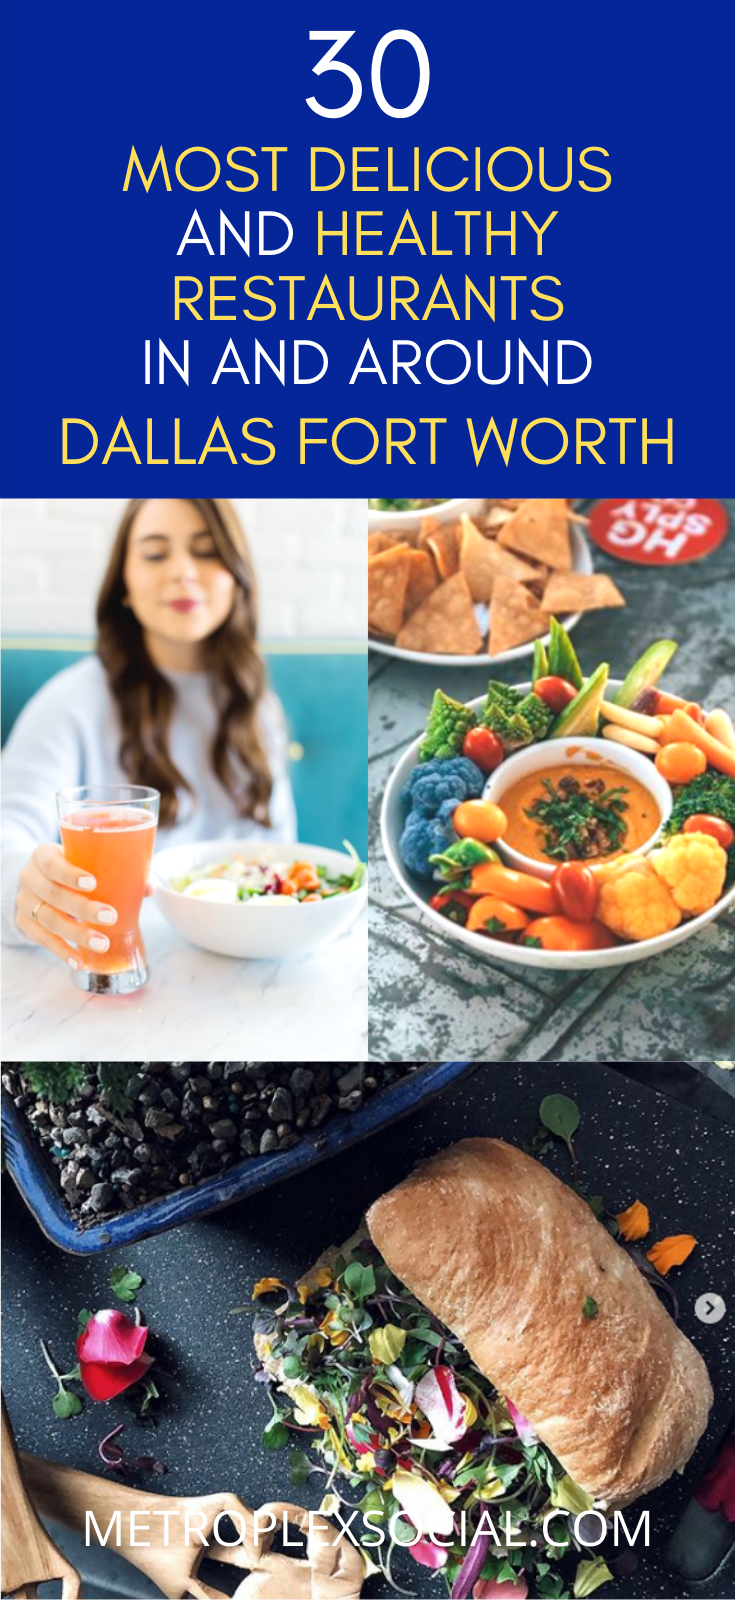 Where To Find The Best Healthy Restaurants Near Dallas Fort Worth In 2020 Healthy Restaurant Vegan Restaurants Healthy